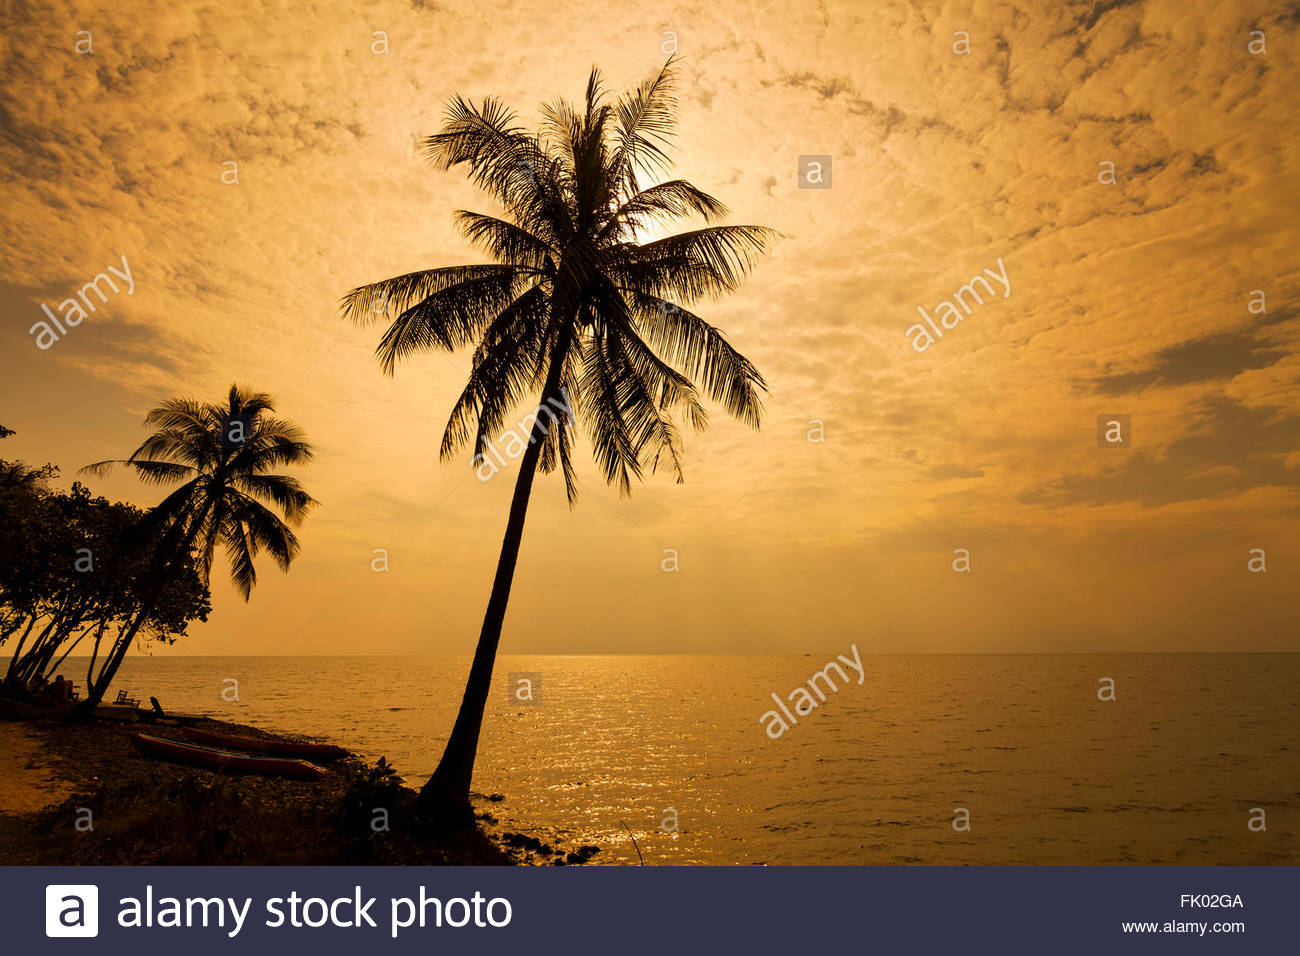 Romantic sunset over the beach. Koh Chang. Thailand. - Stock Image